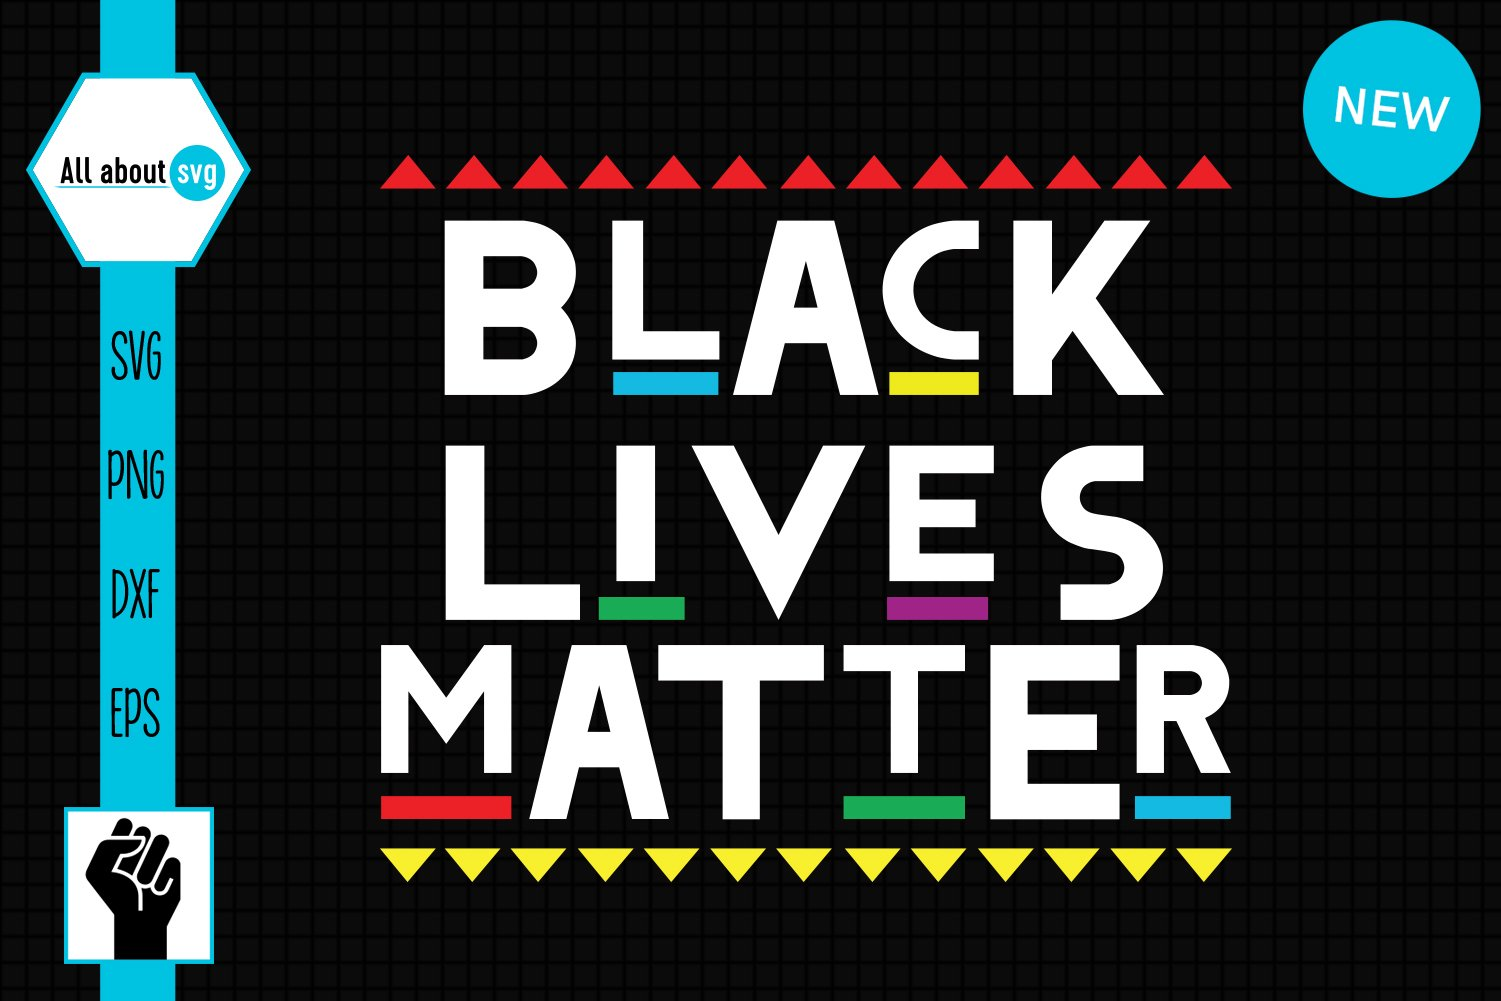 Black Lives Matter Svg, Black Lives Protest Svg example image 2